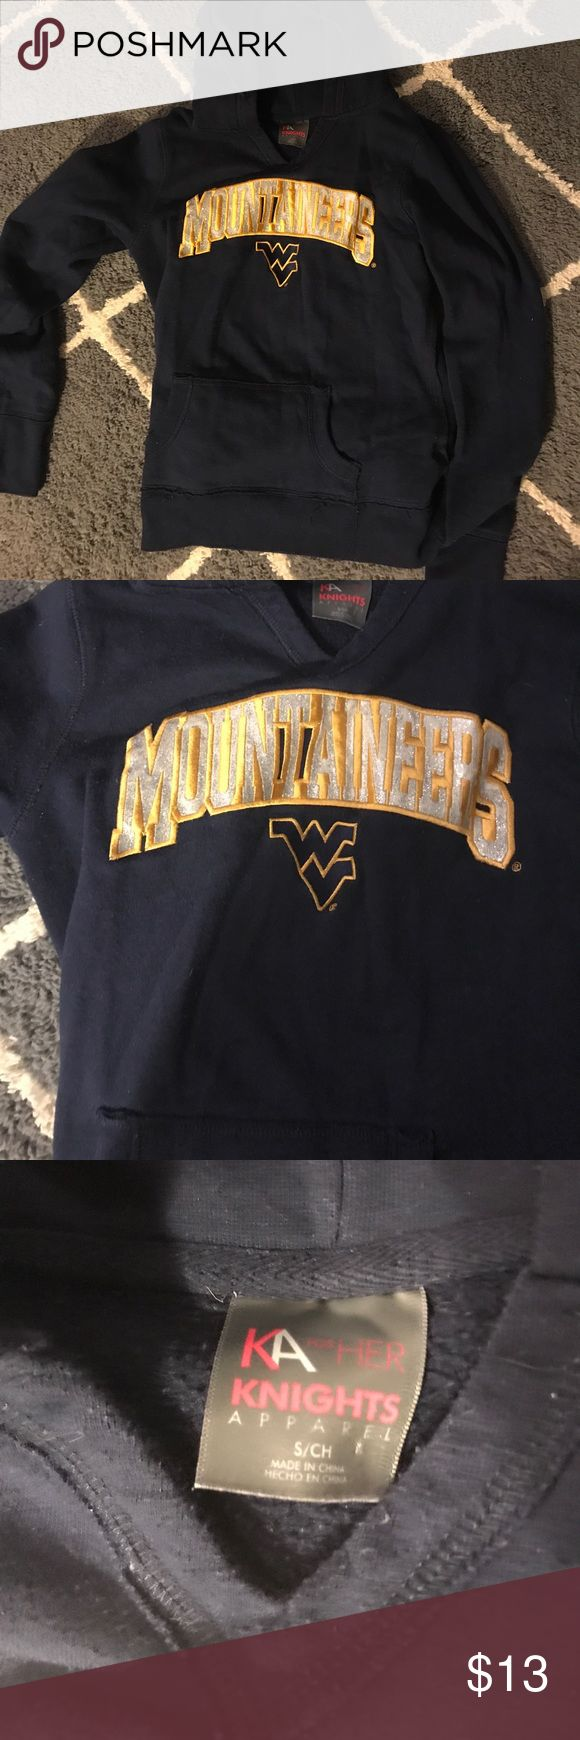 navy blue wvu mountaineers hoodie nwot sparkles. size small can also fit xs Tops Sweatshirts & Hoodies